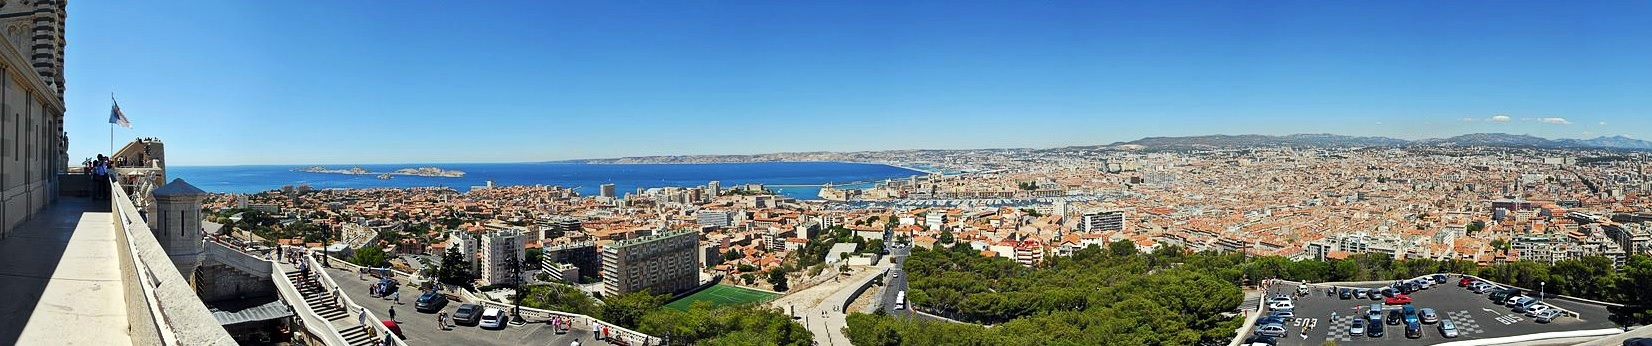 panorama-marseille-bonne-mere-notre-dame